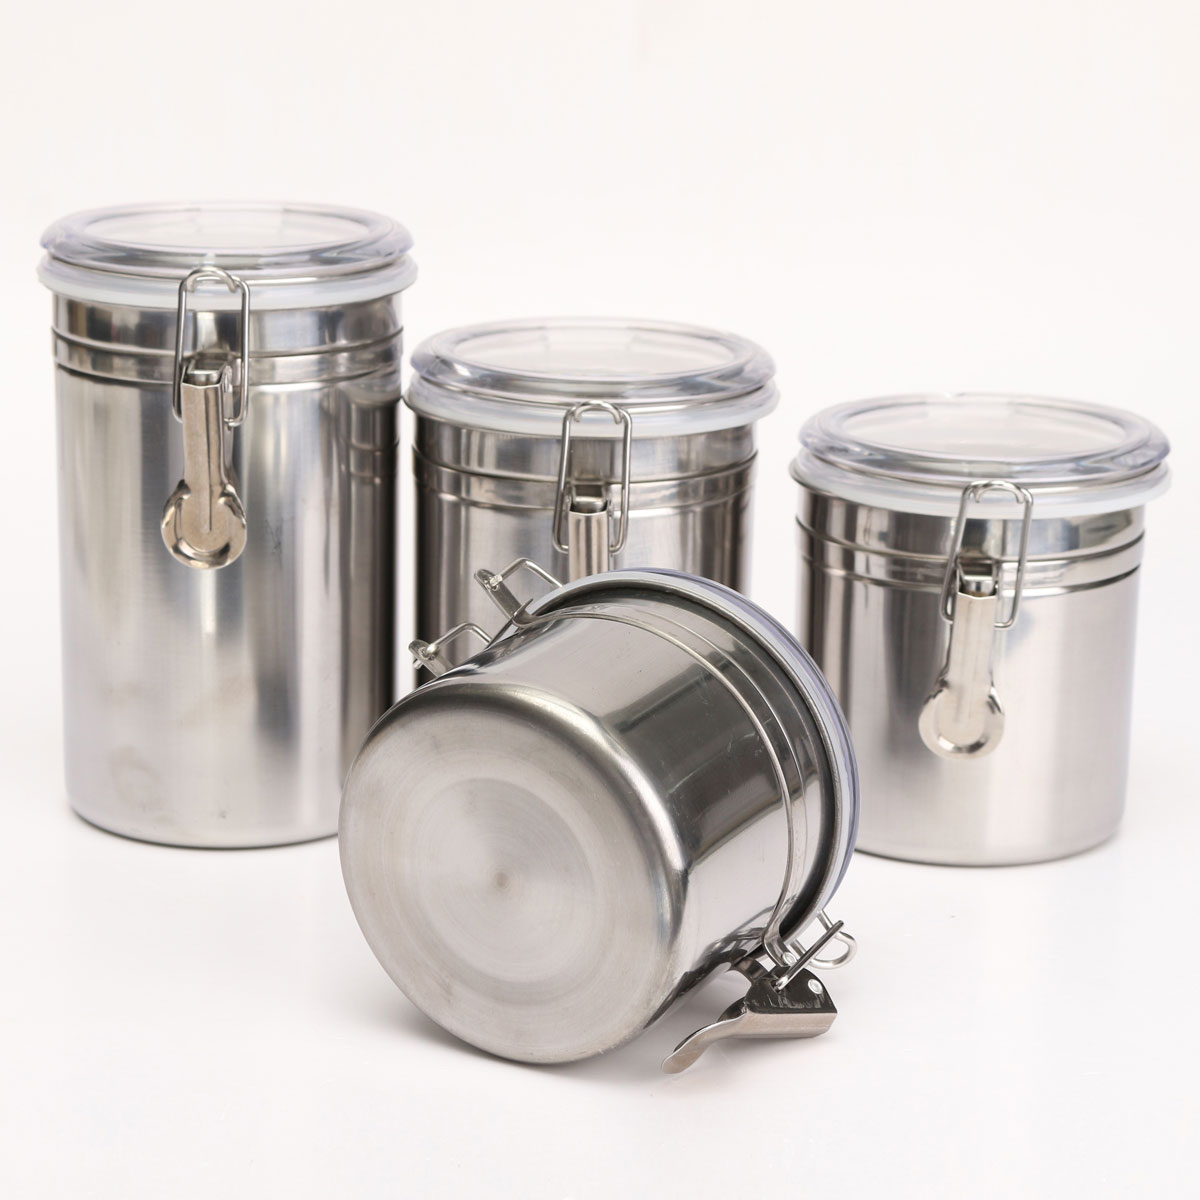 Stainless steel storage containers for kitchen - Aliexpress Com Buy Metal Storage Food Bottles Sugar Tea Coffee Beans Canisters Snack Cans Kitchen Container Tools 4 Size From Reliable Tool External